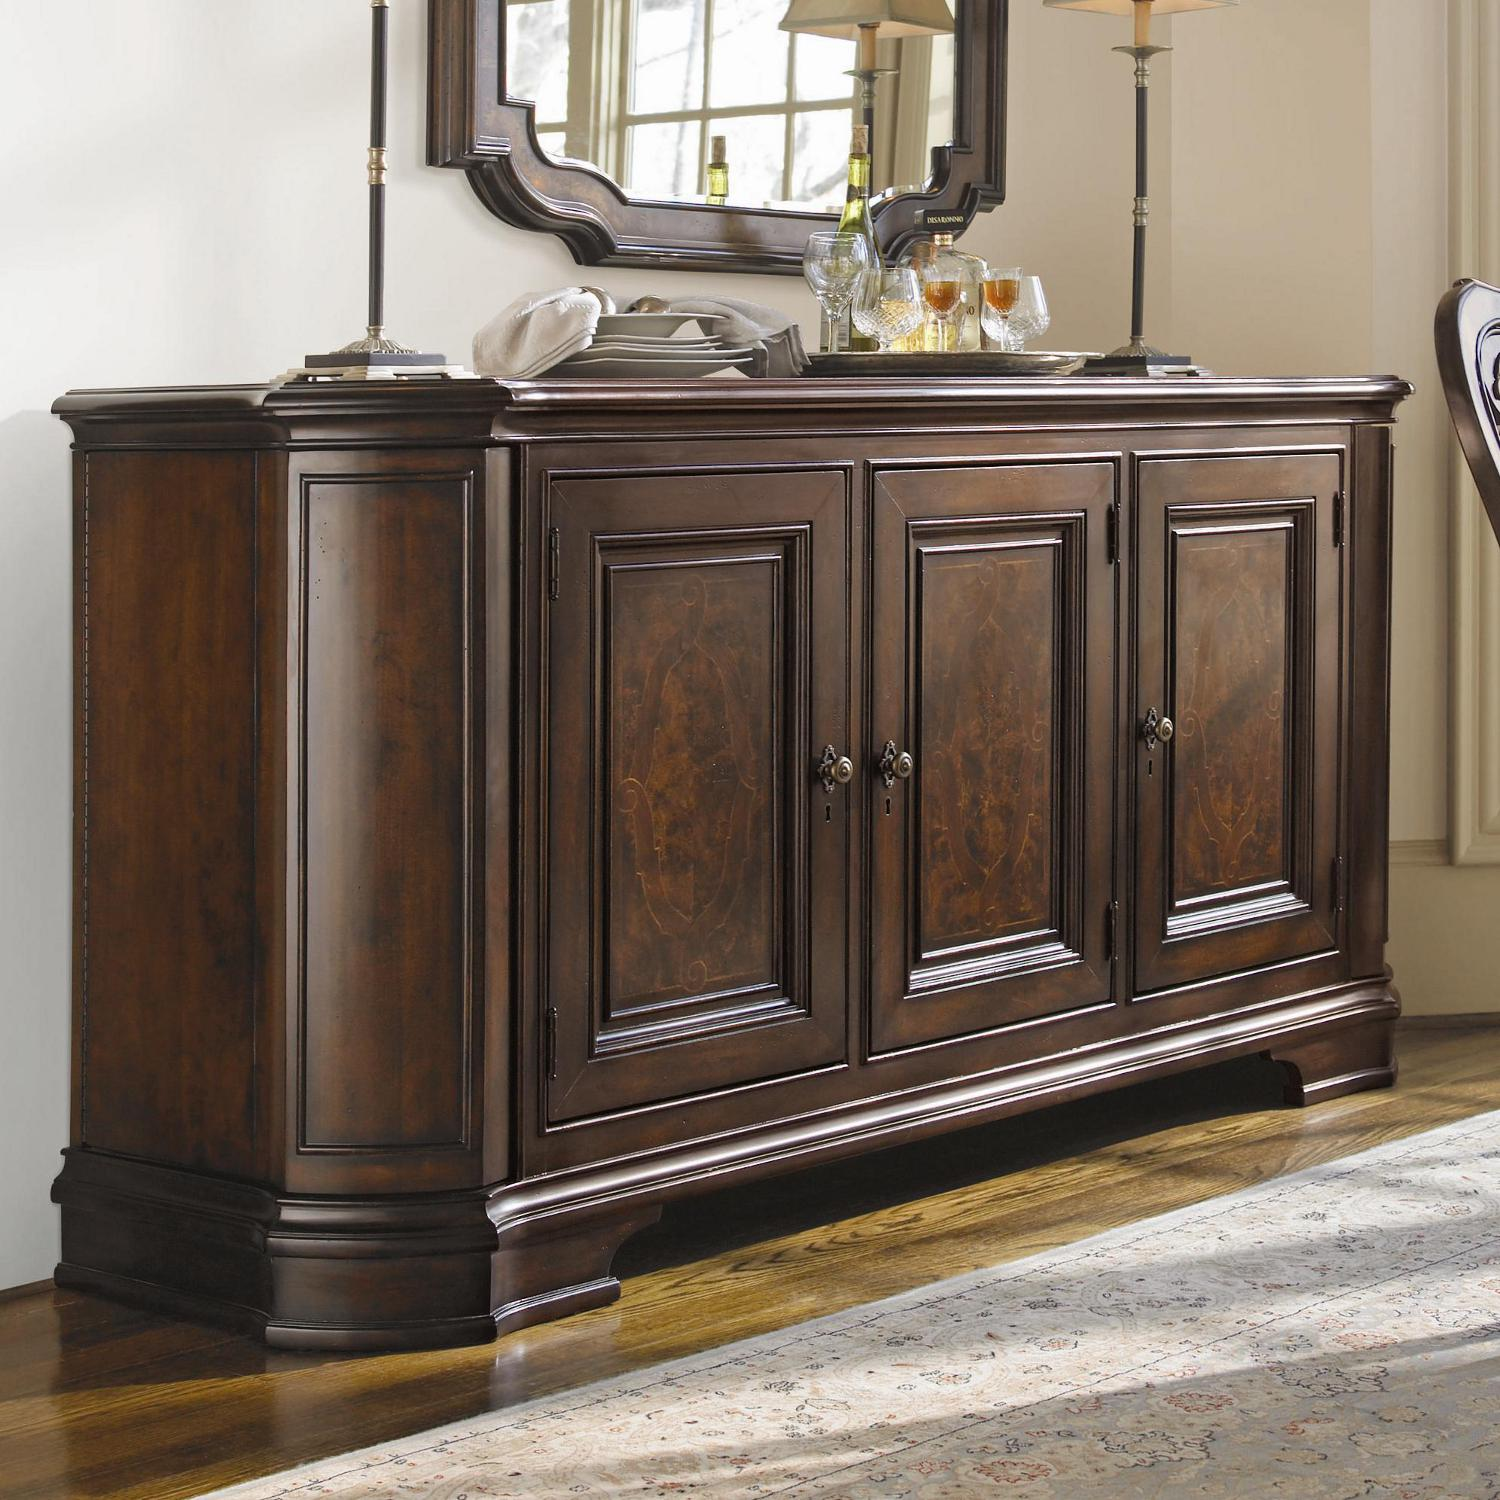 Attractive Sideboards And Buffets For Home Furniture With Antique